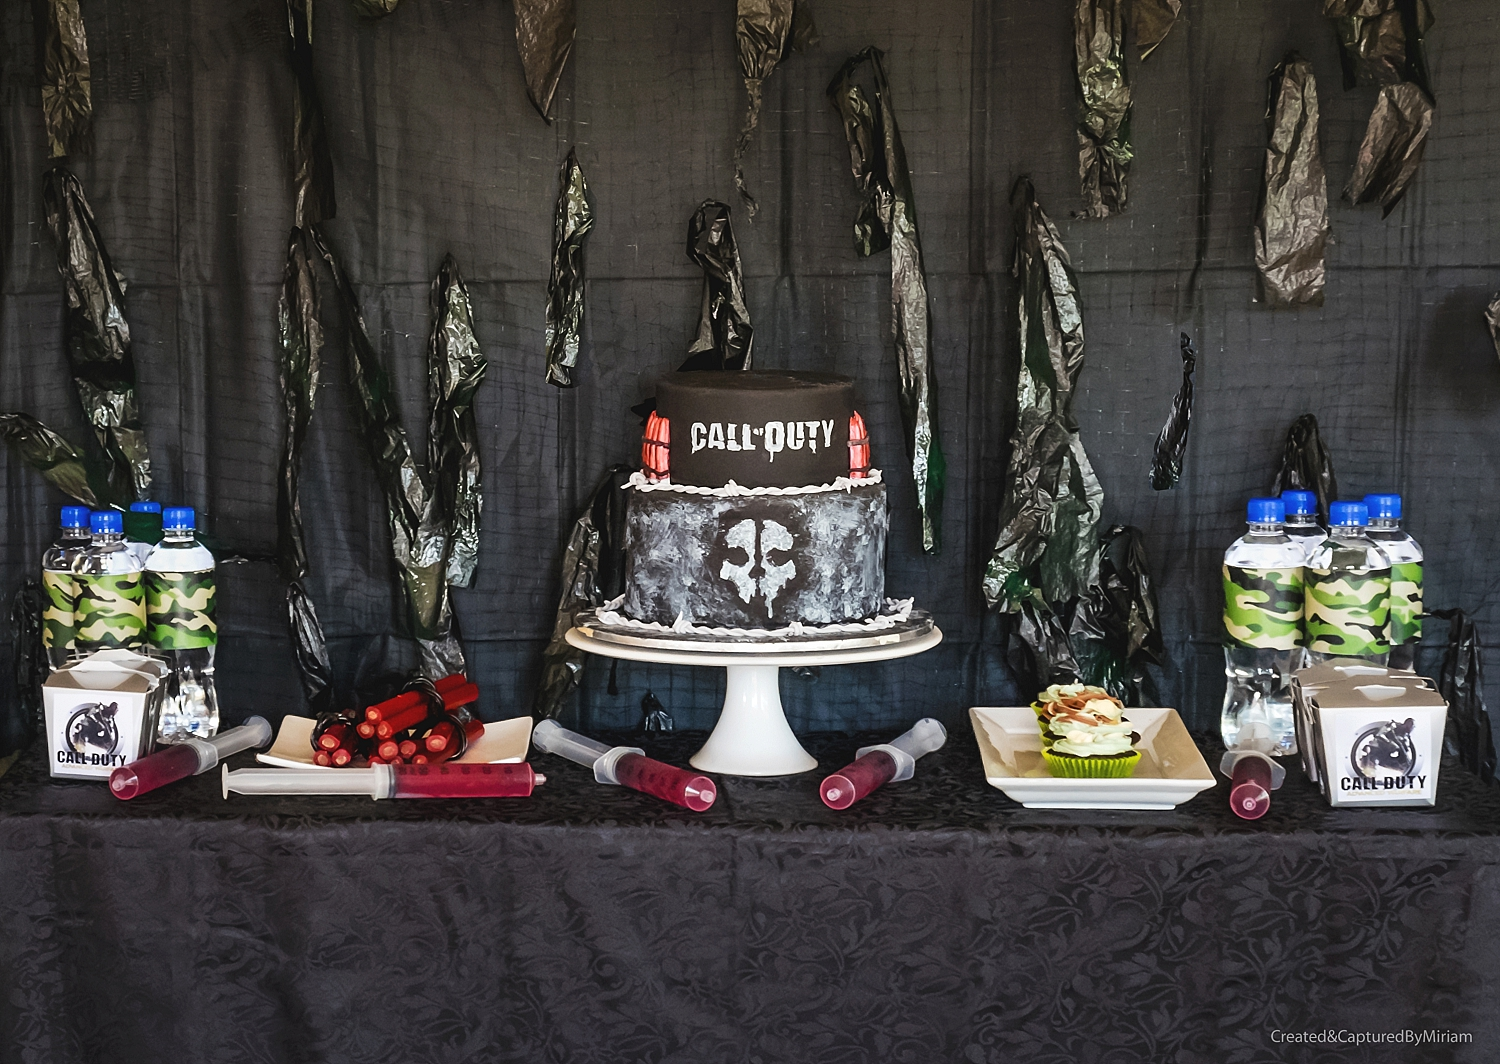 Call of Duty Dessert Table